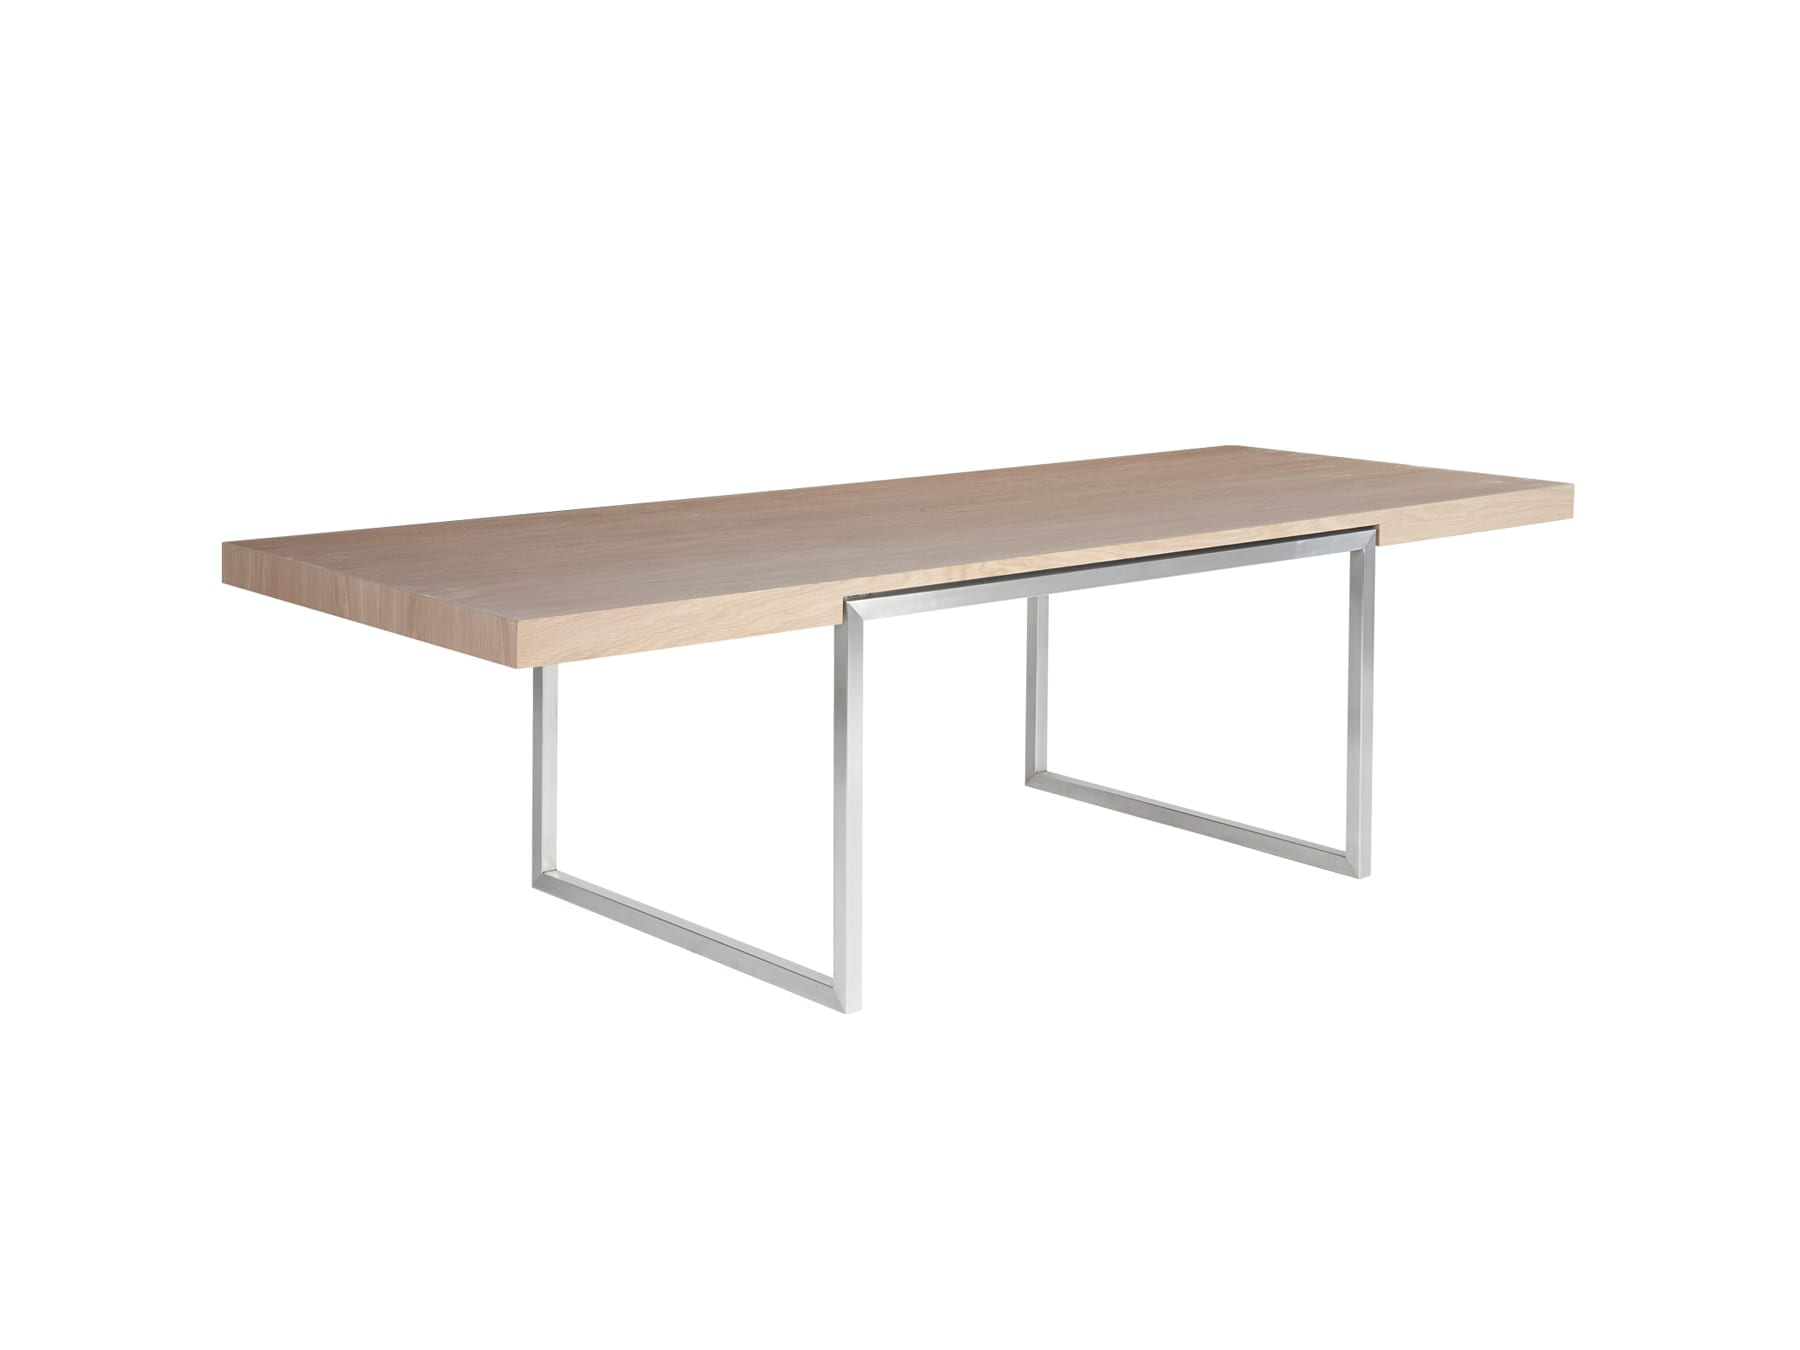 Evolution Dimarco 2 Dining Table